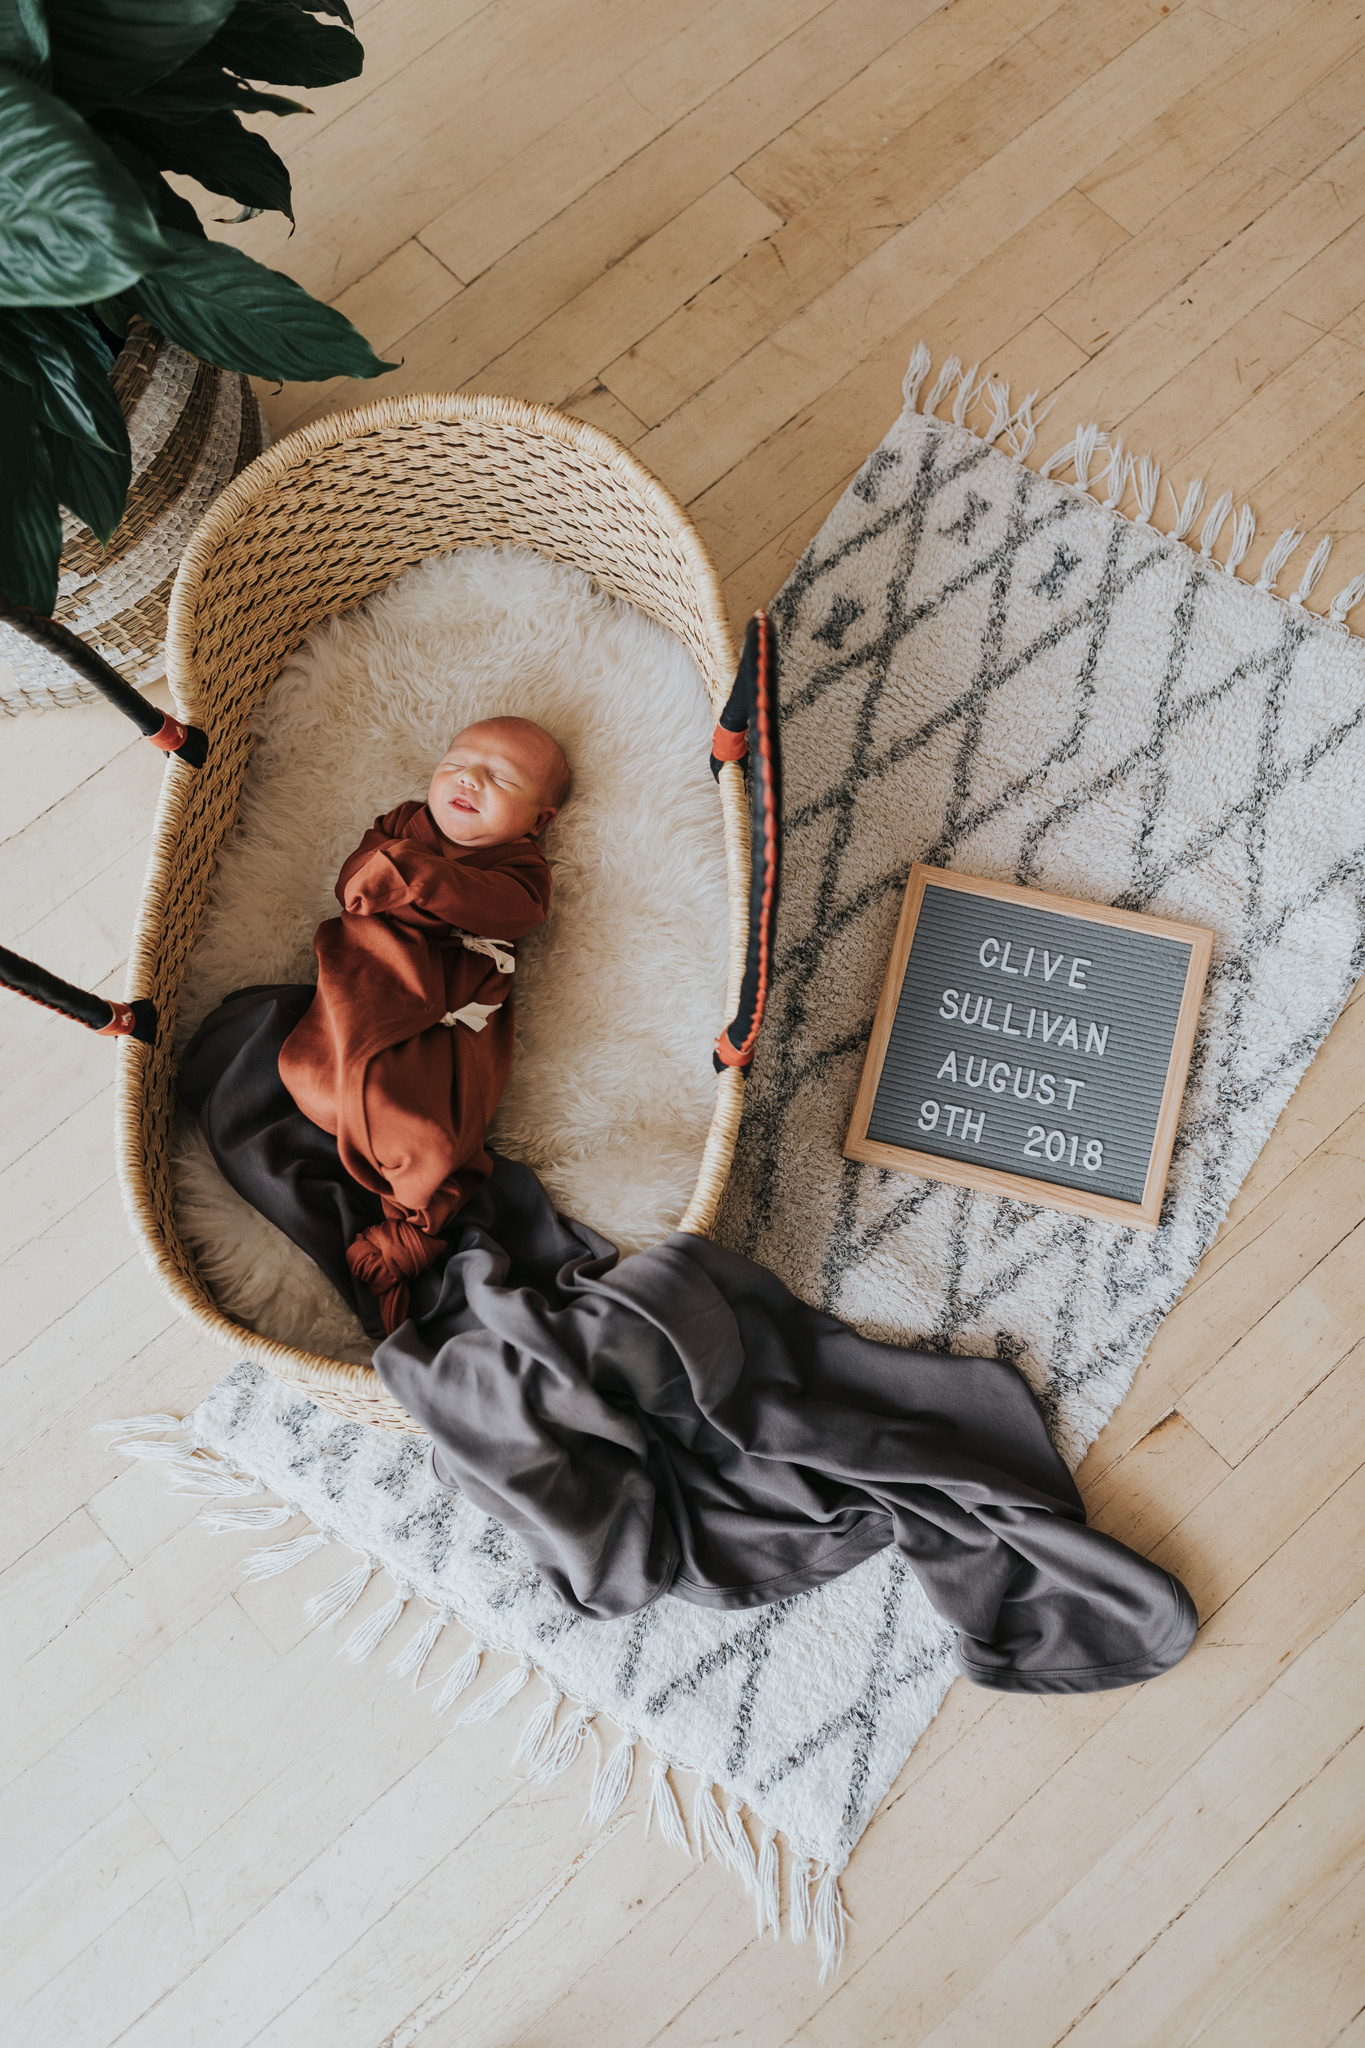 newborn baby laying in bassinet basket with birth announcement sign